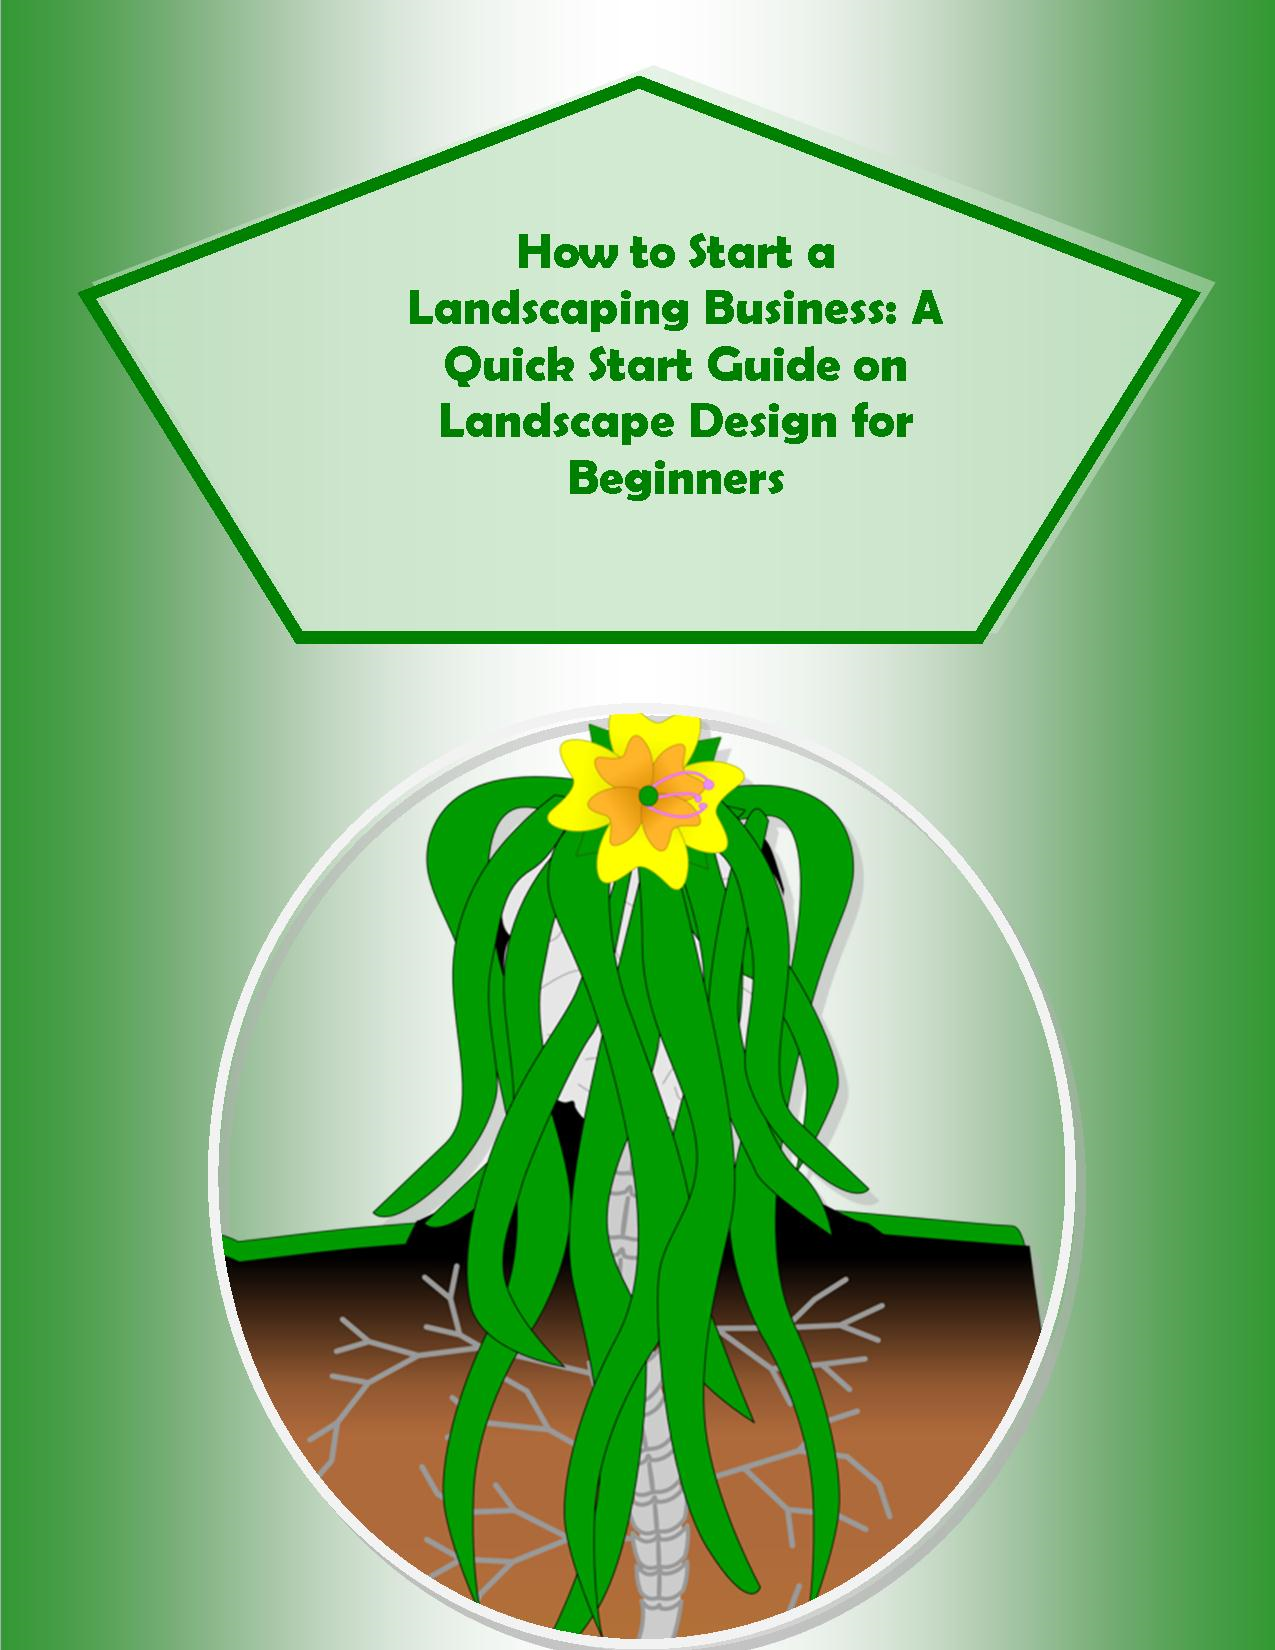 How to Start a Landscaping Business: A Quick Start Guide on  Landscape Design for Beginners By: Doug M. Browning